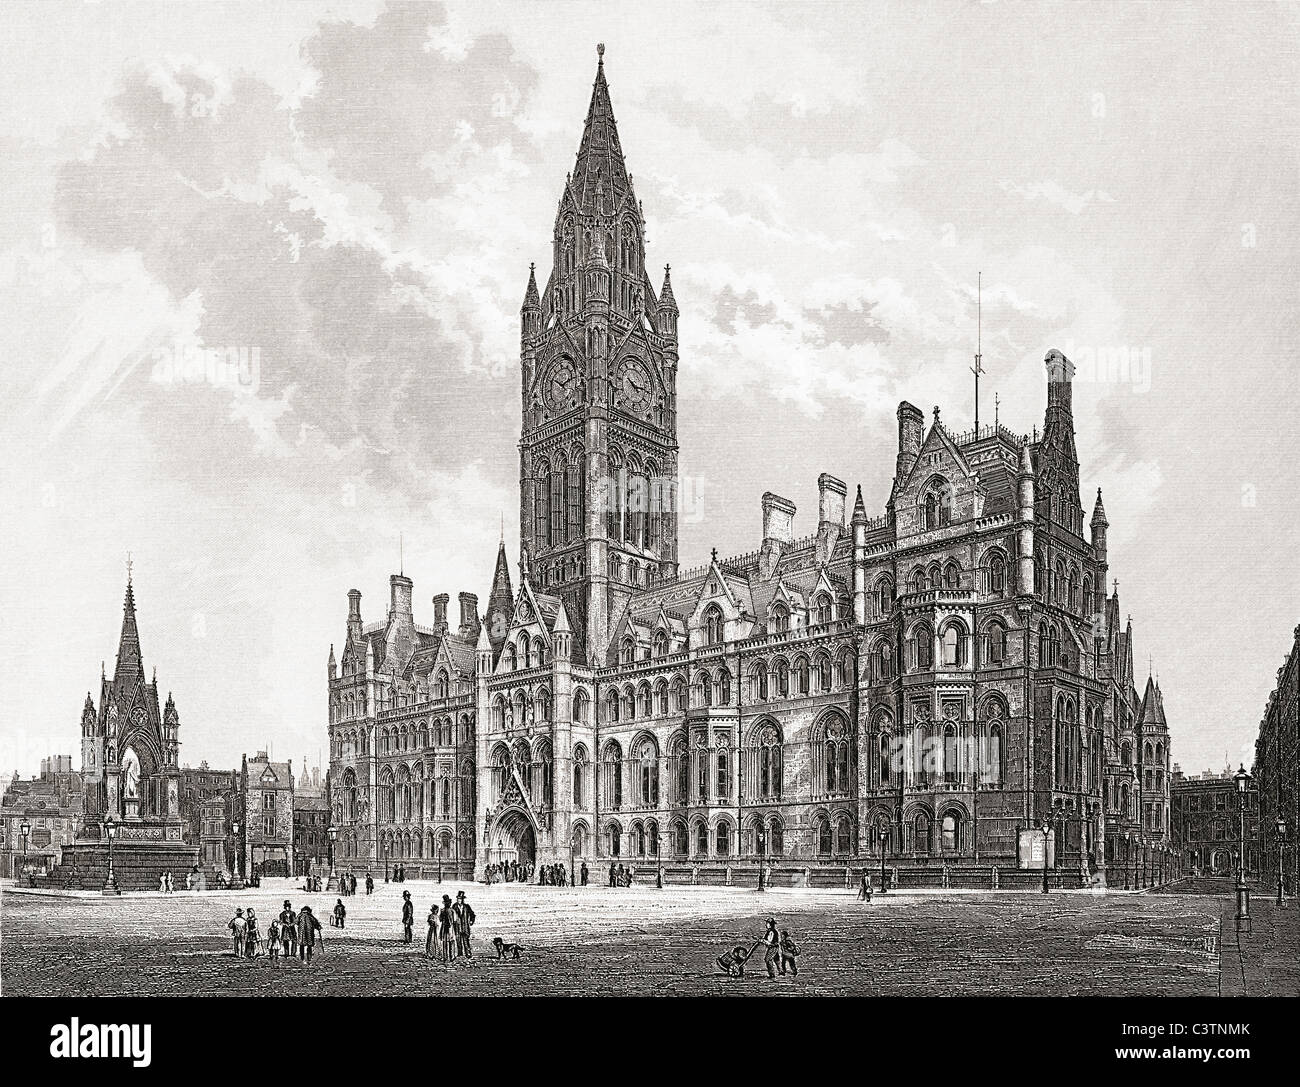 Manchester Town Hall, Manchester, England in the late 19th nineteenth century. - Stock Image